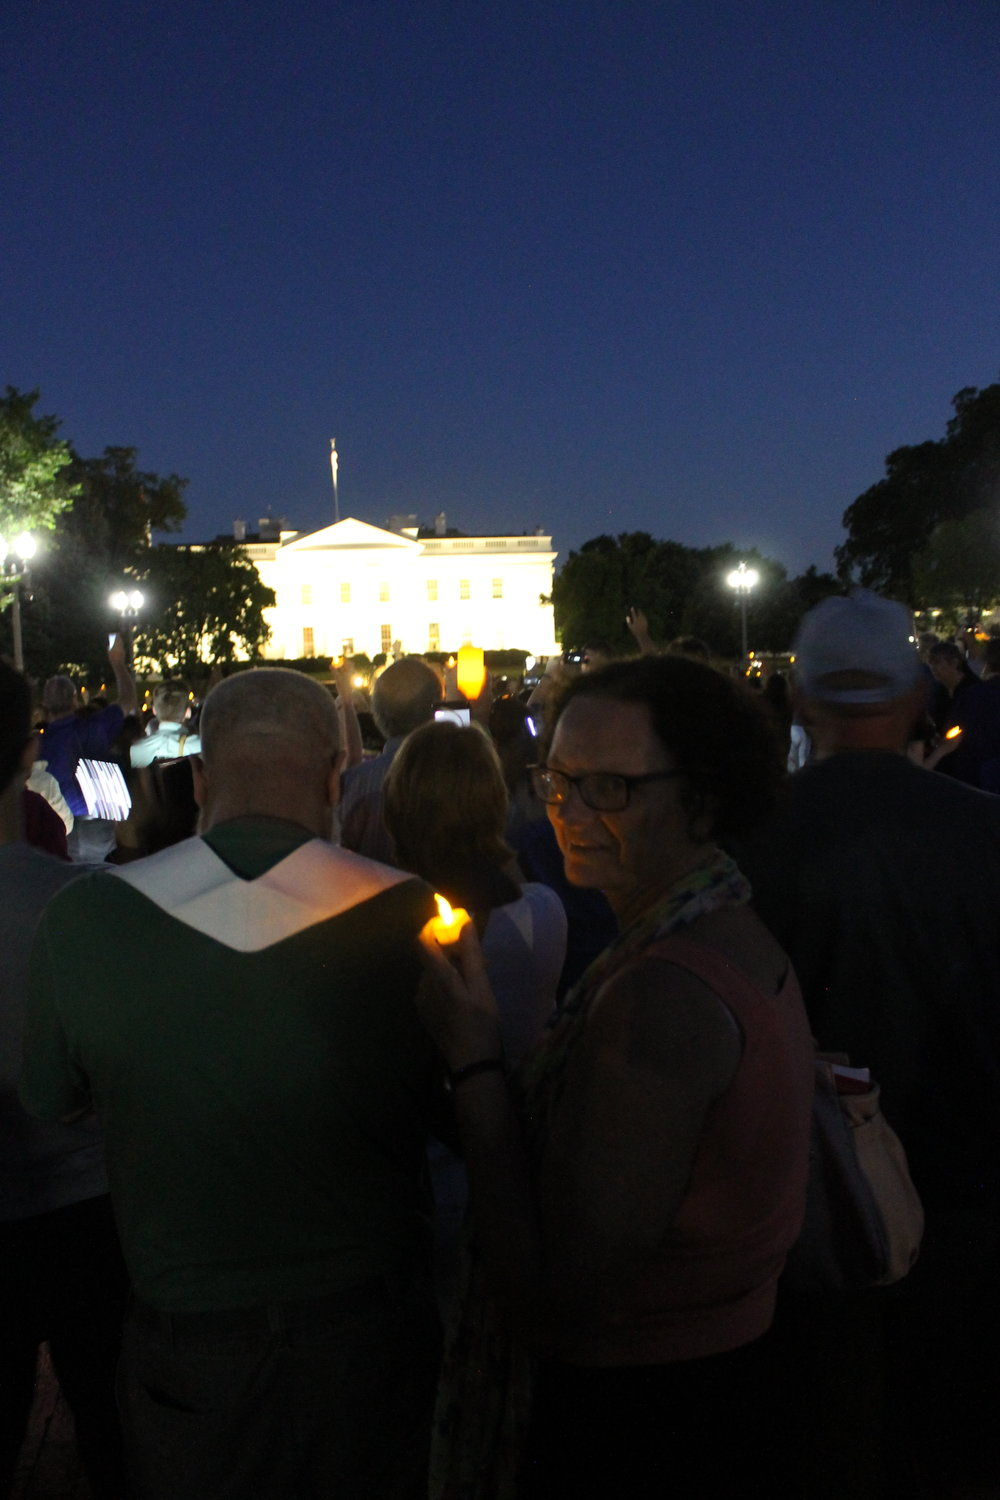 Nikki at WHite house with candle.JPG